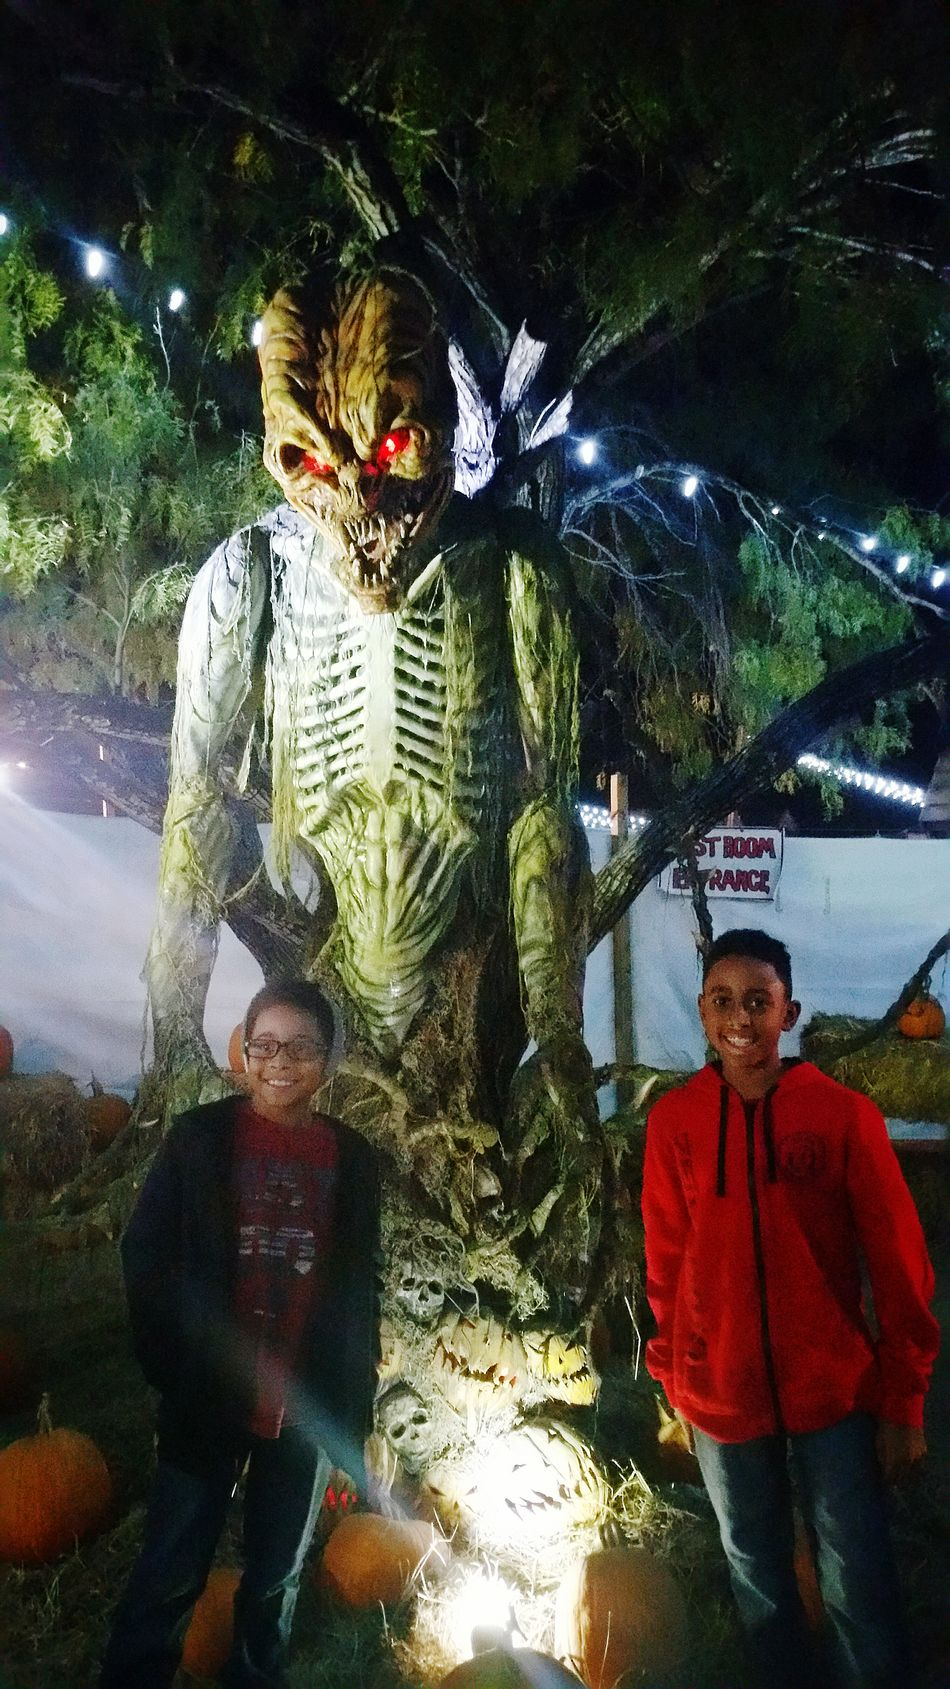 My kids enjoyed the haunted house.